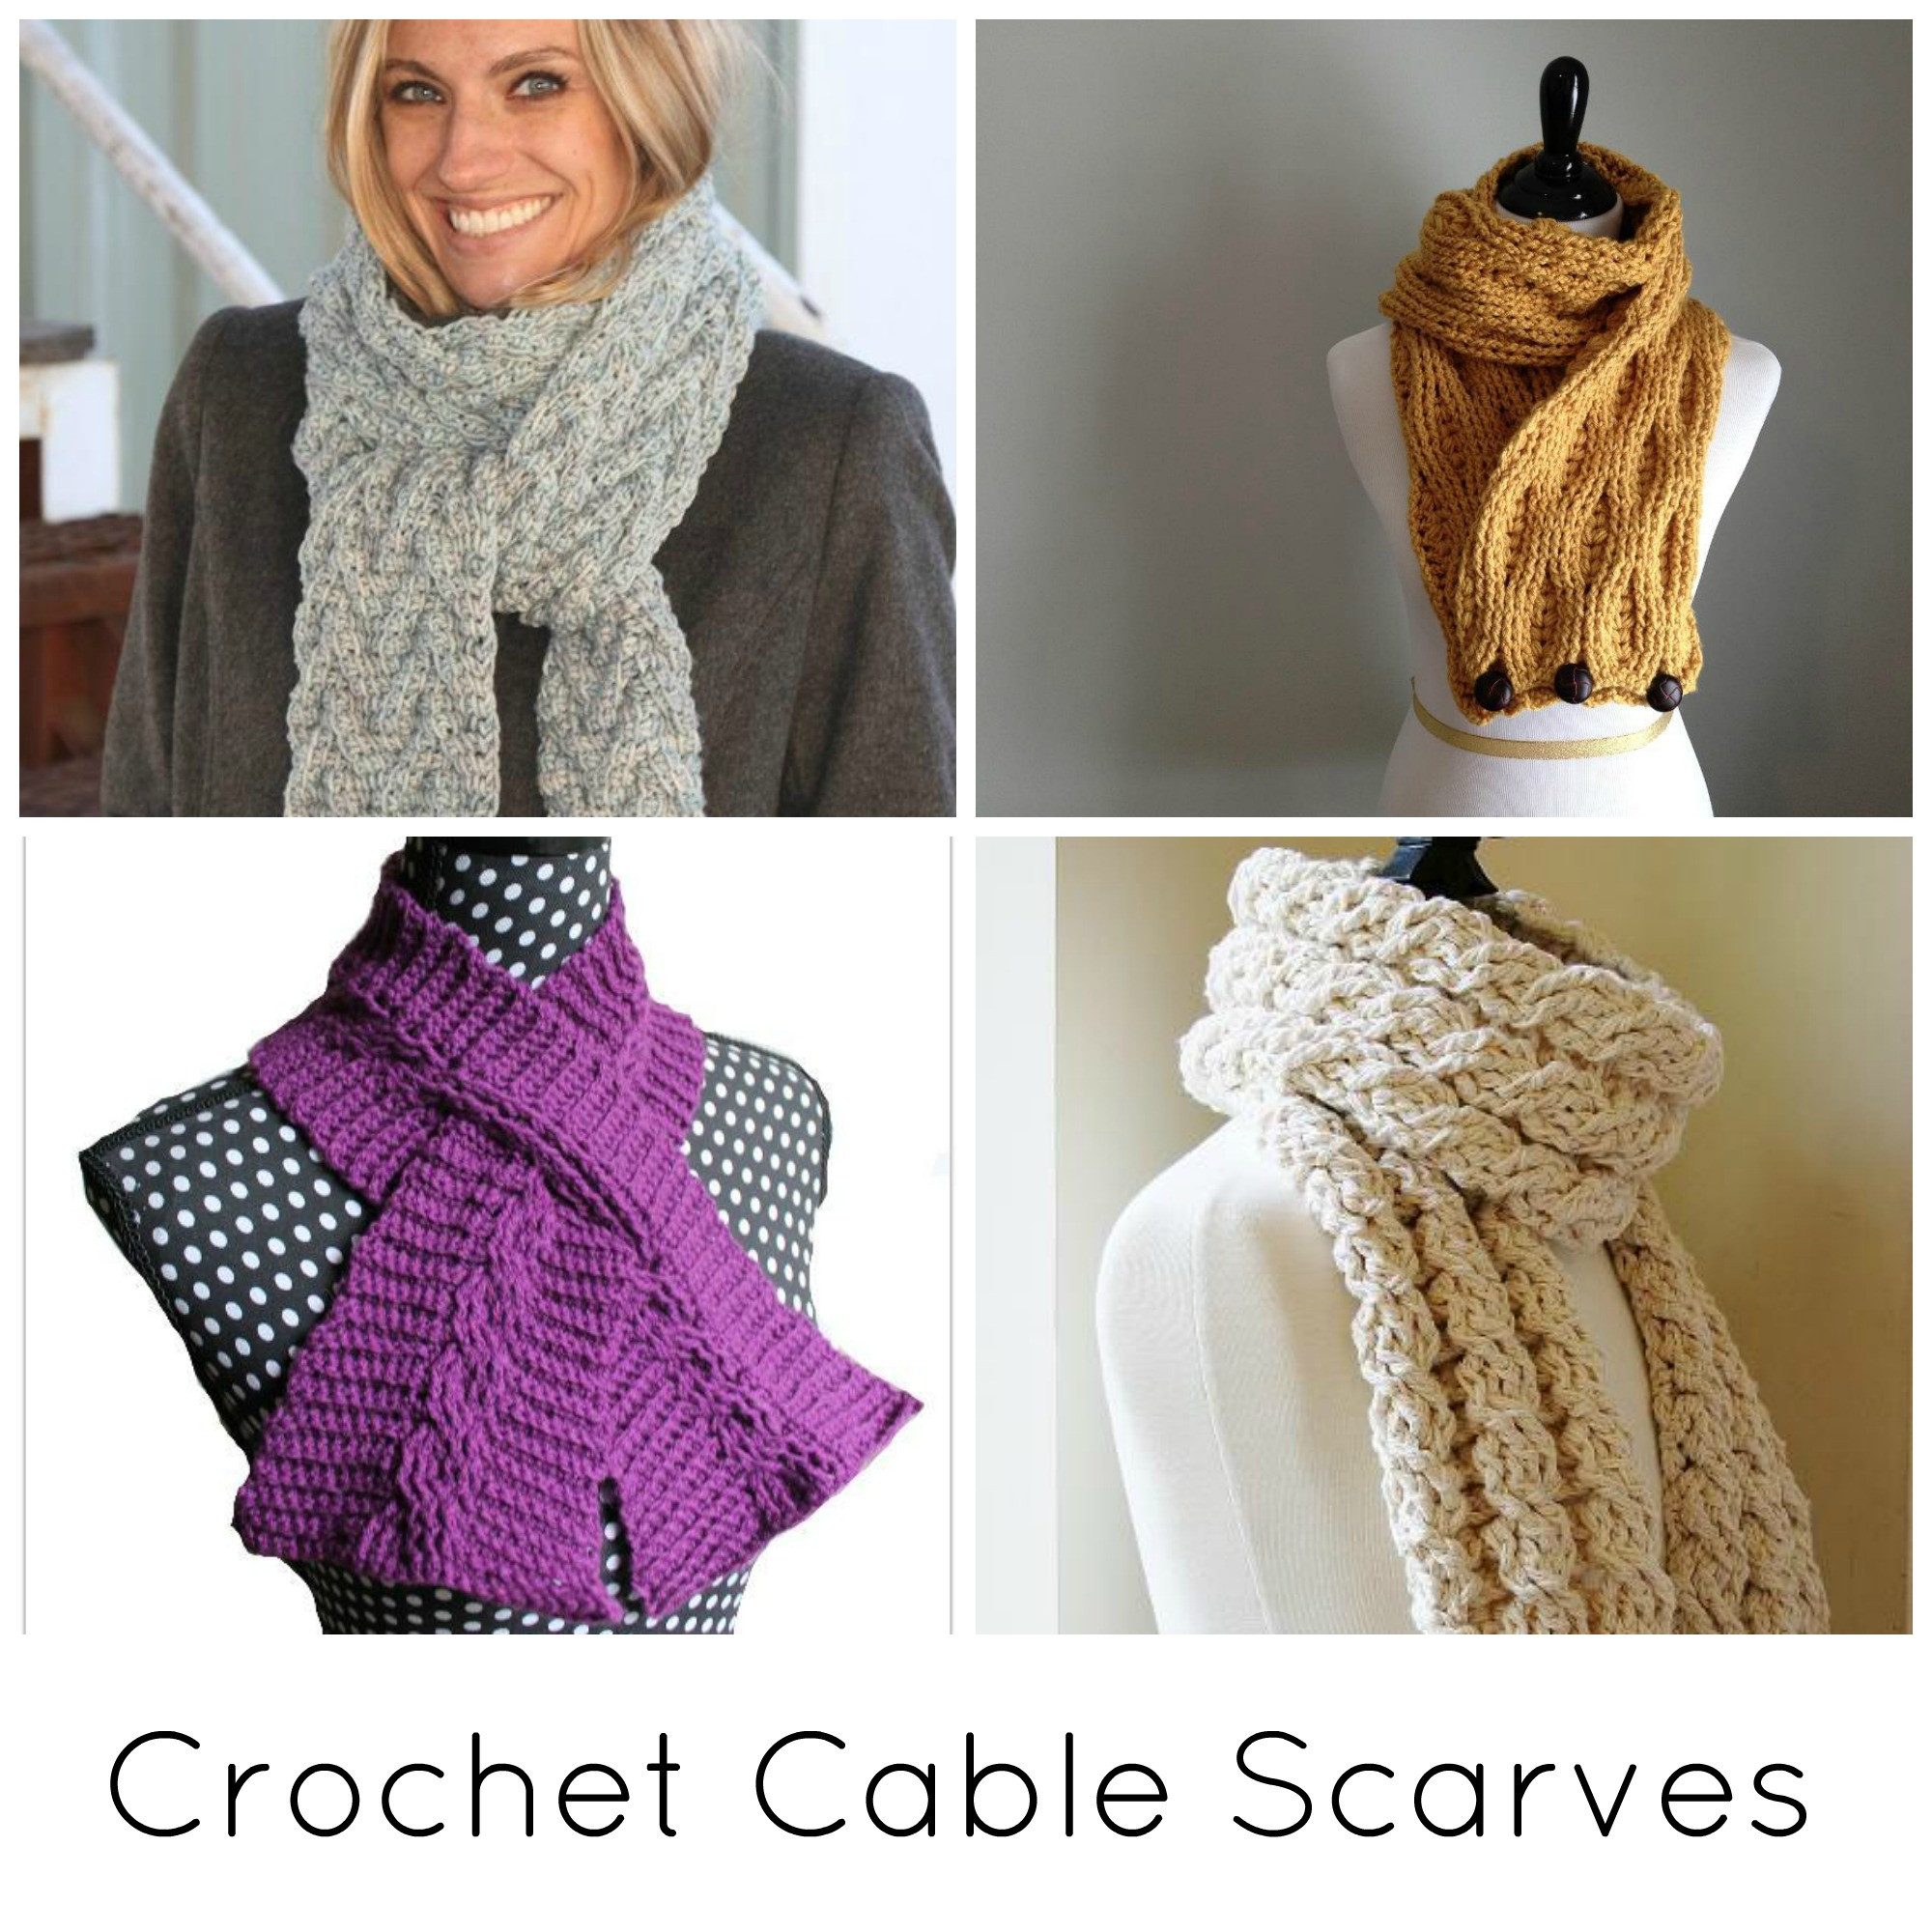 Crochet Cables Elegant Crochet Cable Scarf Patterns 10 Projects You Ll Love Of Amazing 48 Pics Crochet Cables